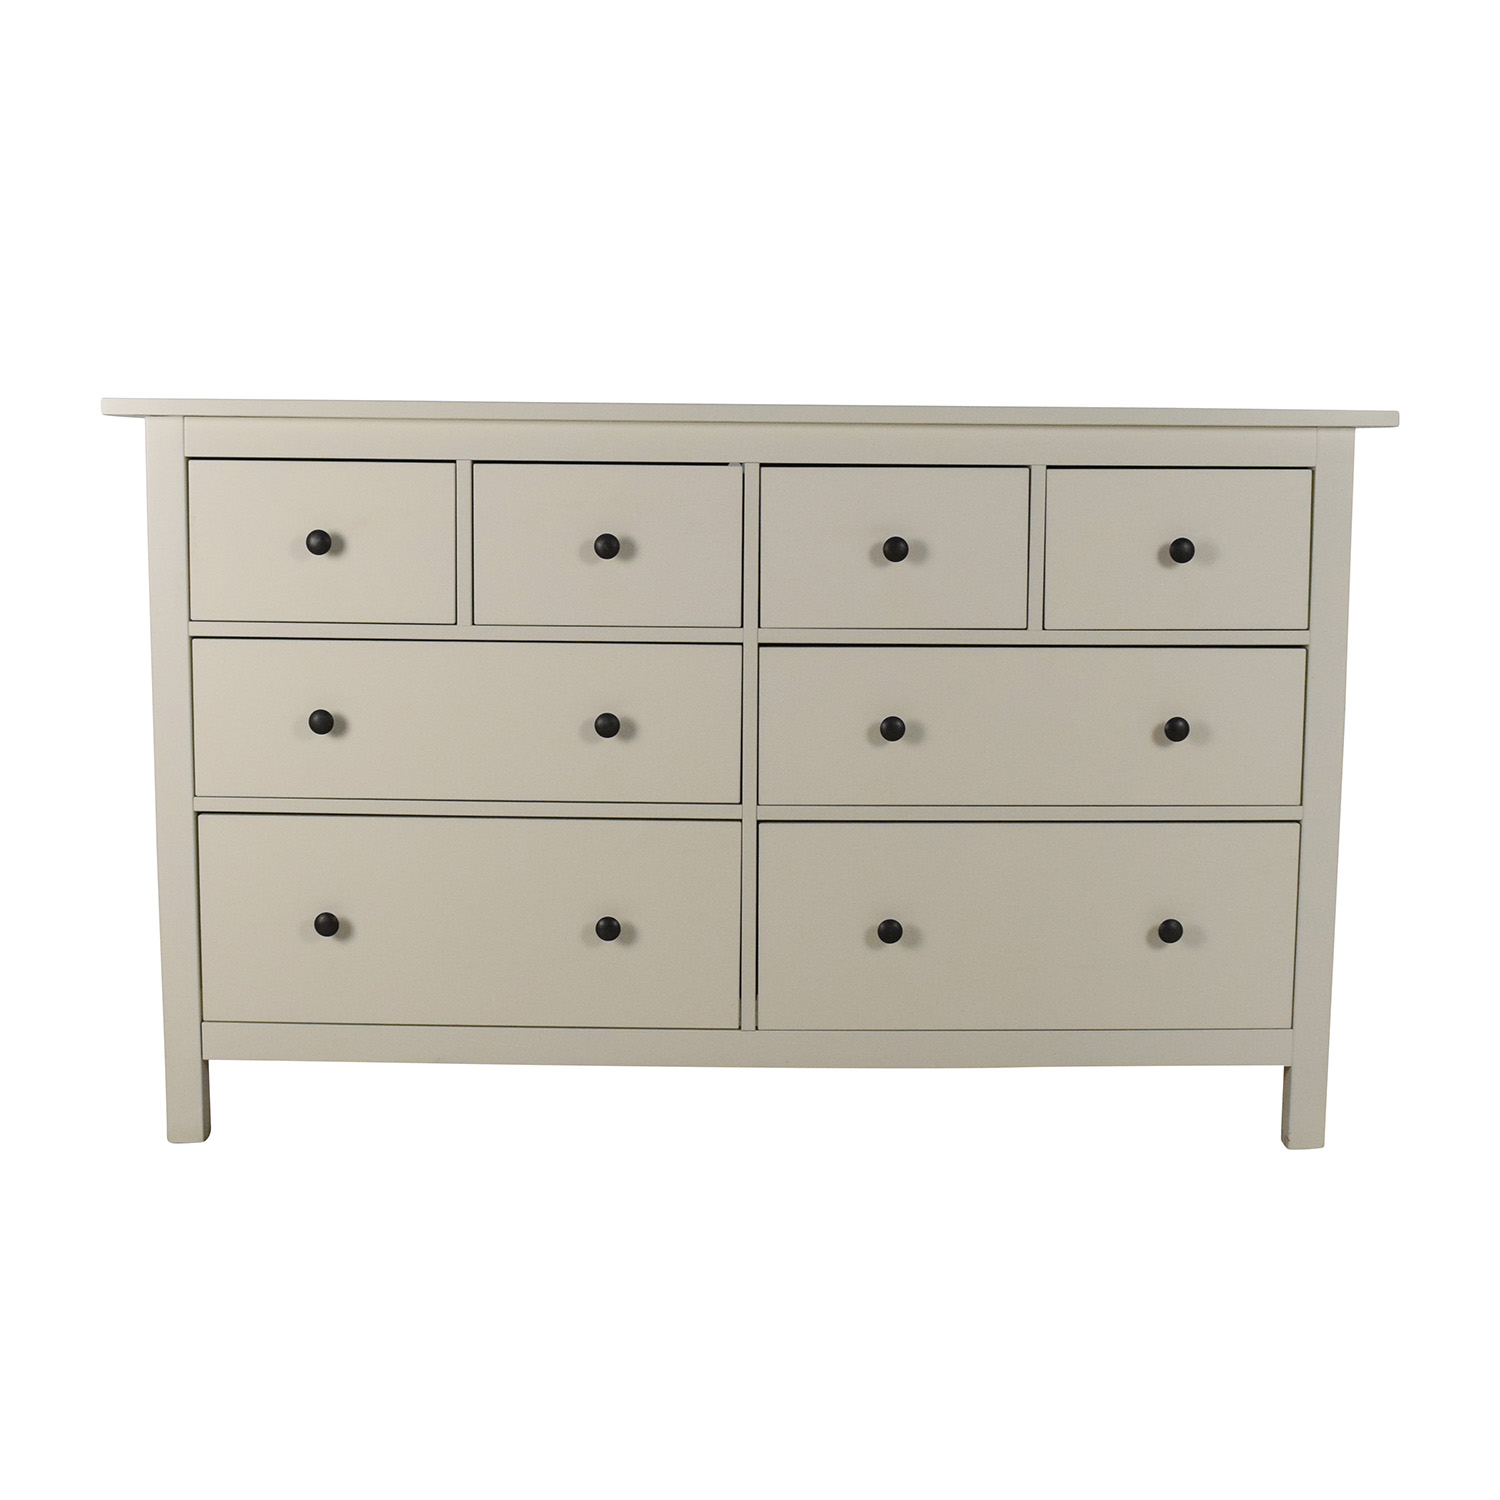 Ikea Hemnes 8 Drawer Dresser Storage